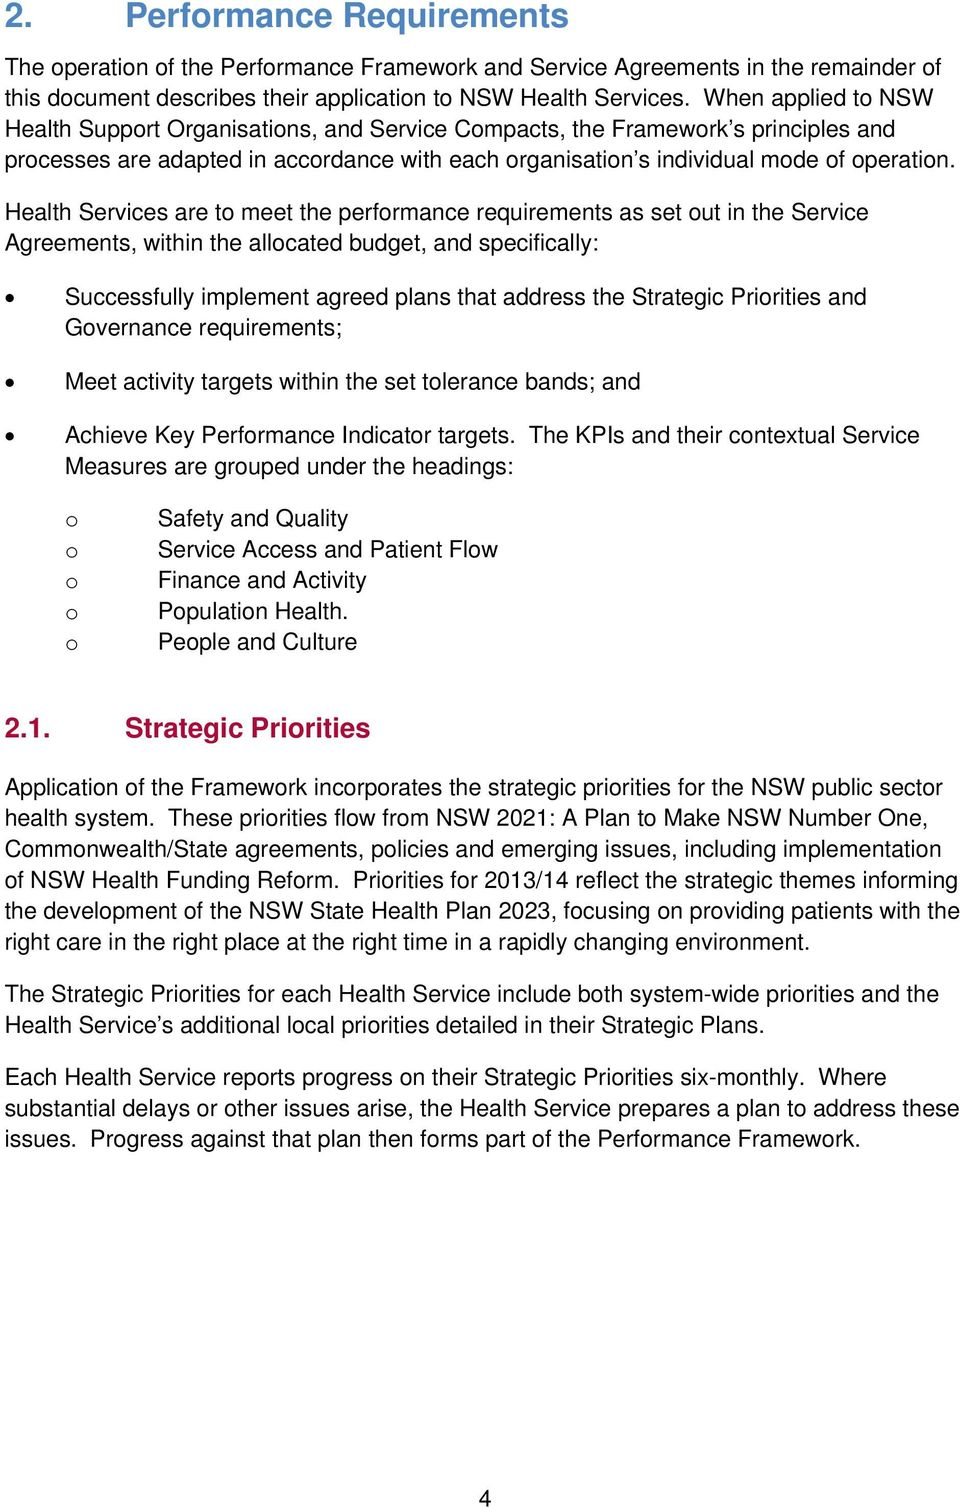 Health Services are to meet the performance requirements as set out in the Service Agreements, within the allocated budget, and specifically: Successfully implement agreed plans that address the